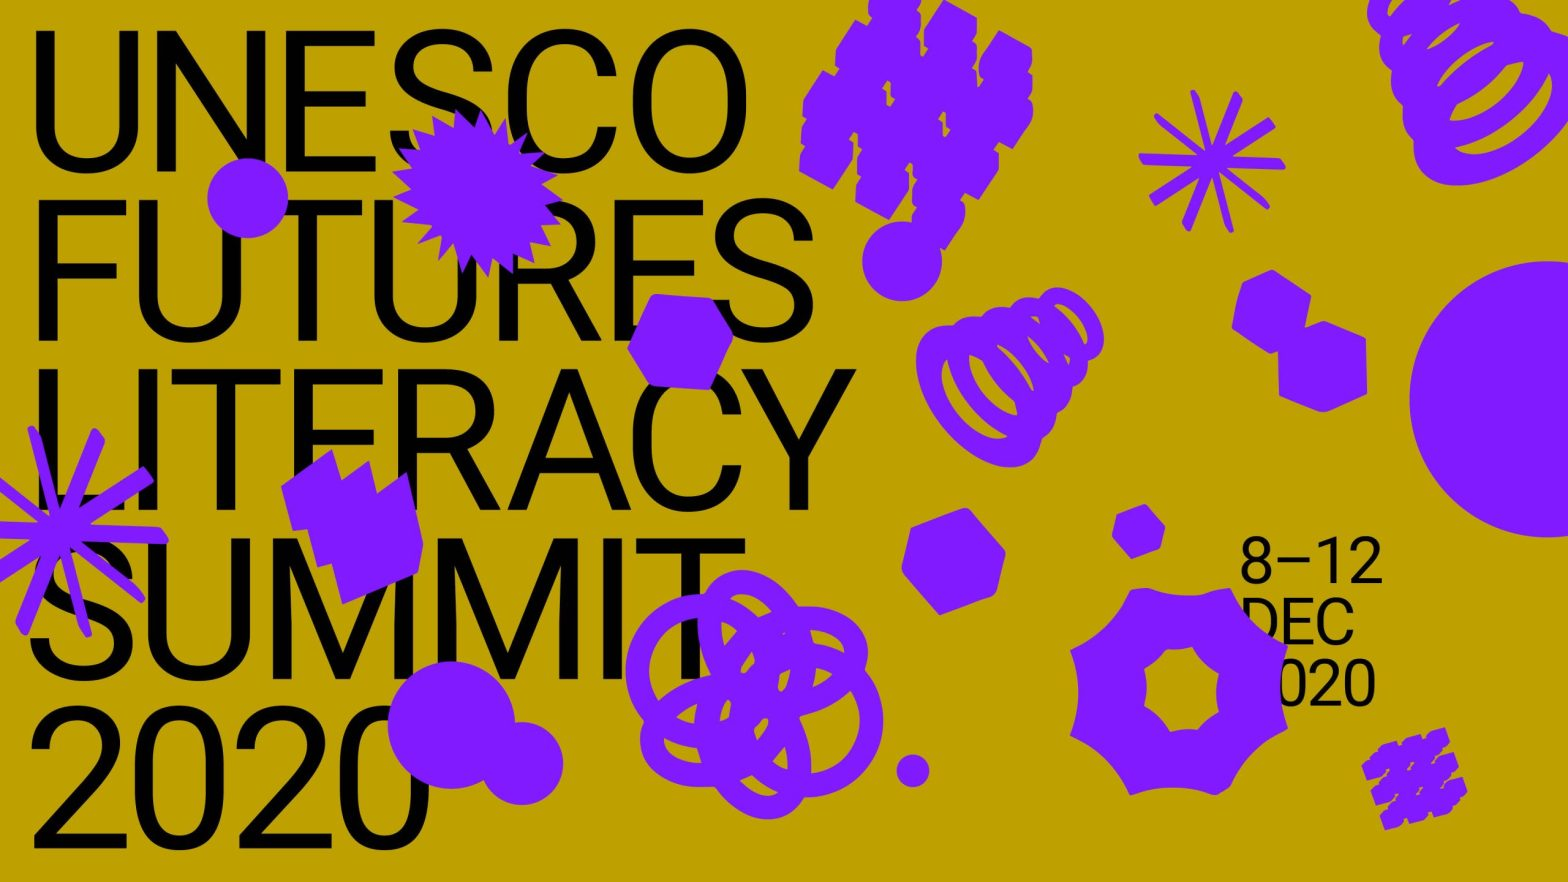 Thumbnail for A Future-Forward Identity for the UNESCO Futures Literacy Summit